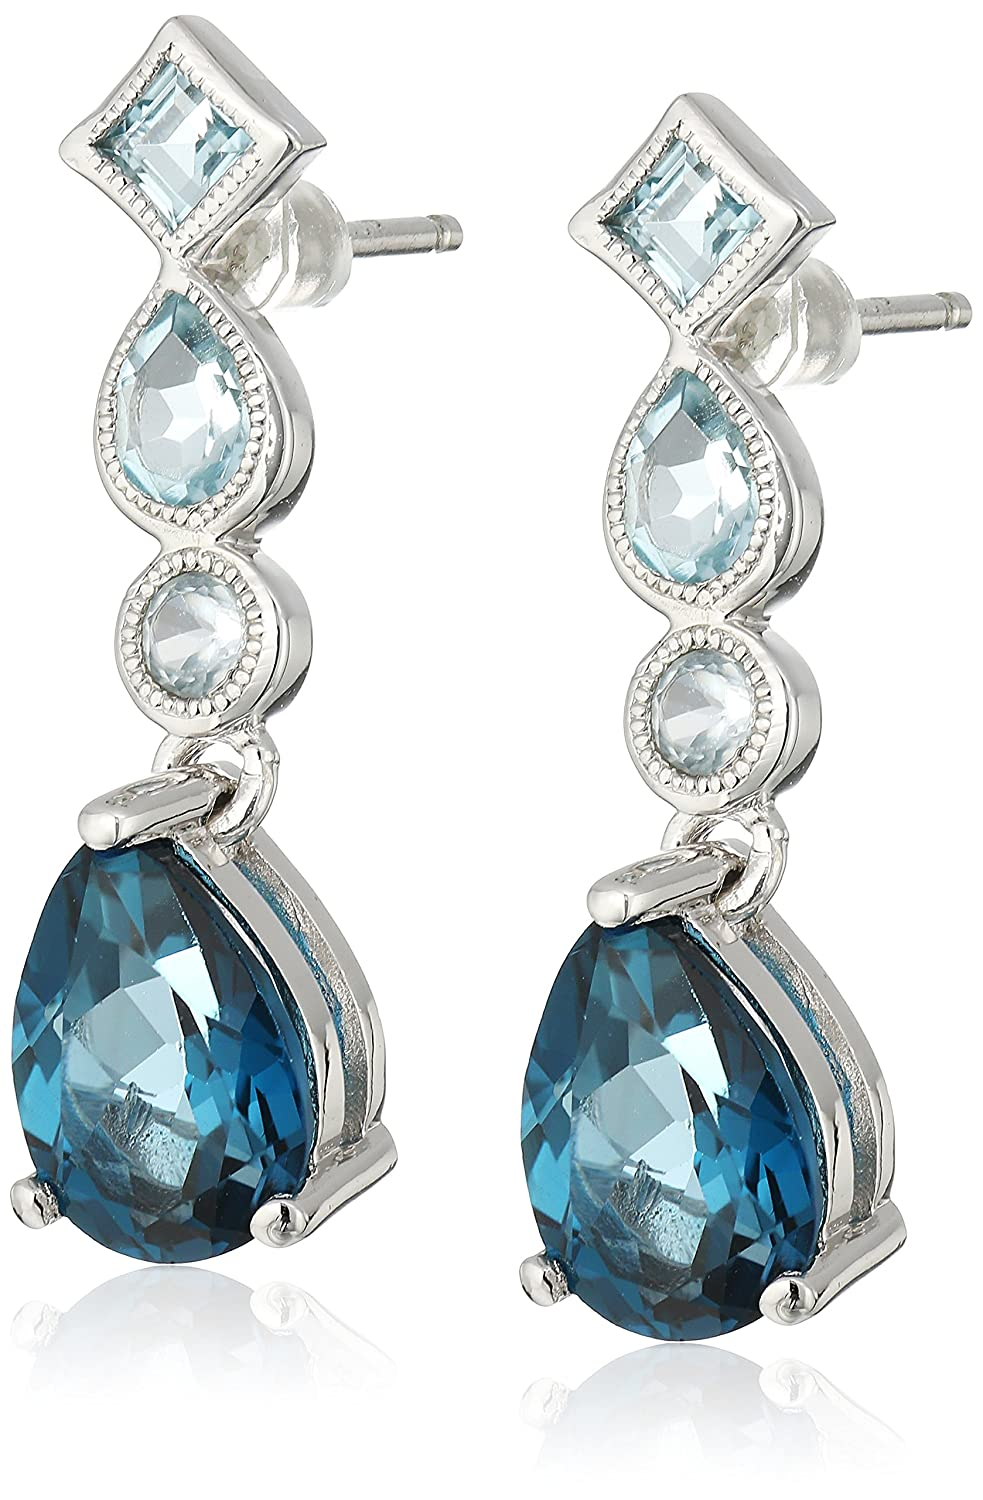 product designs halo jewelry chevron earrings topaz blue